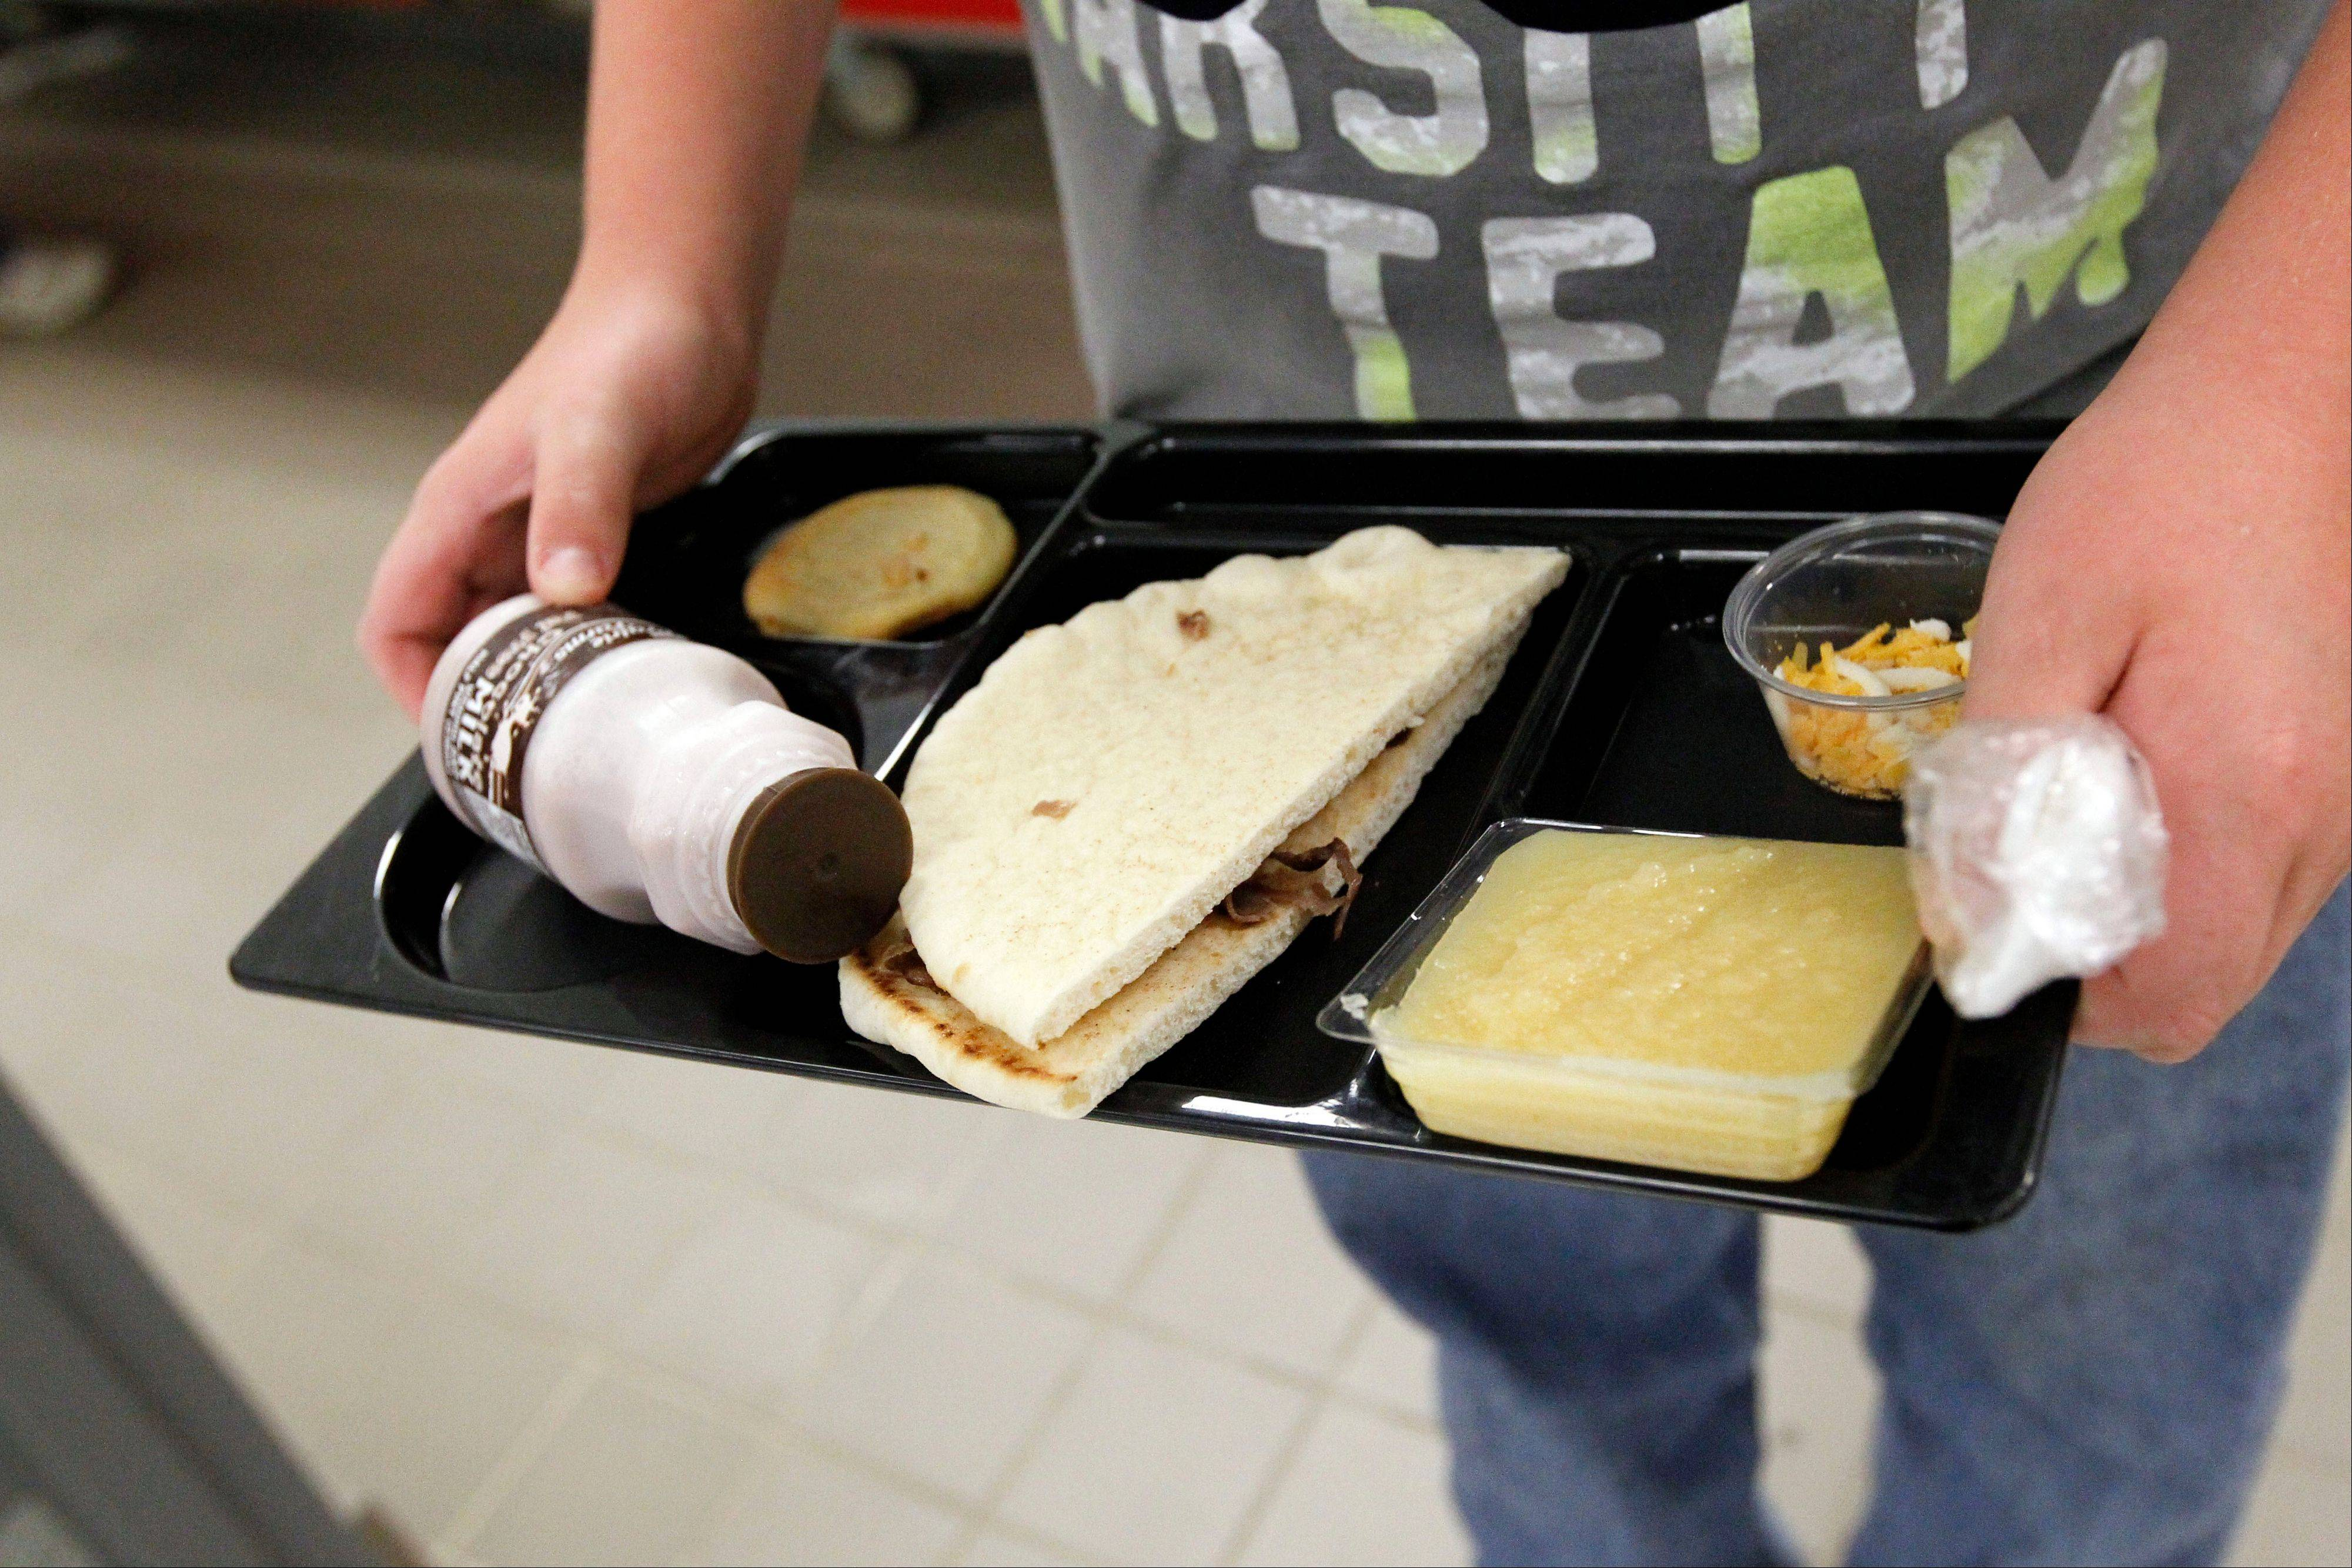 A student at Eastside Elementary School in Clinton, Miss., carries out a noon meal consisting of a flat bread roast beef sandwich, apple sauce, chocolate milk and a cookie, Wednesday, Sept. 12, 2012. The leaner, greener school lunches served under new federal standards are getting mixed grades from students.